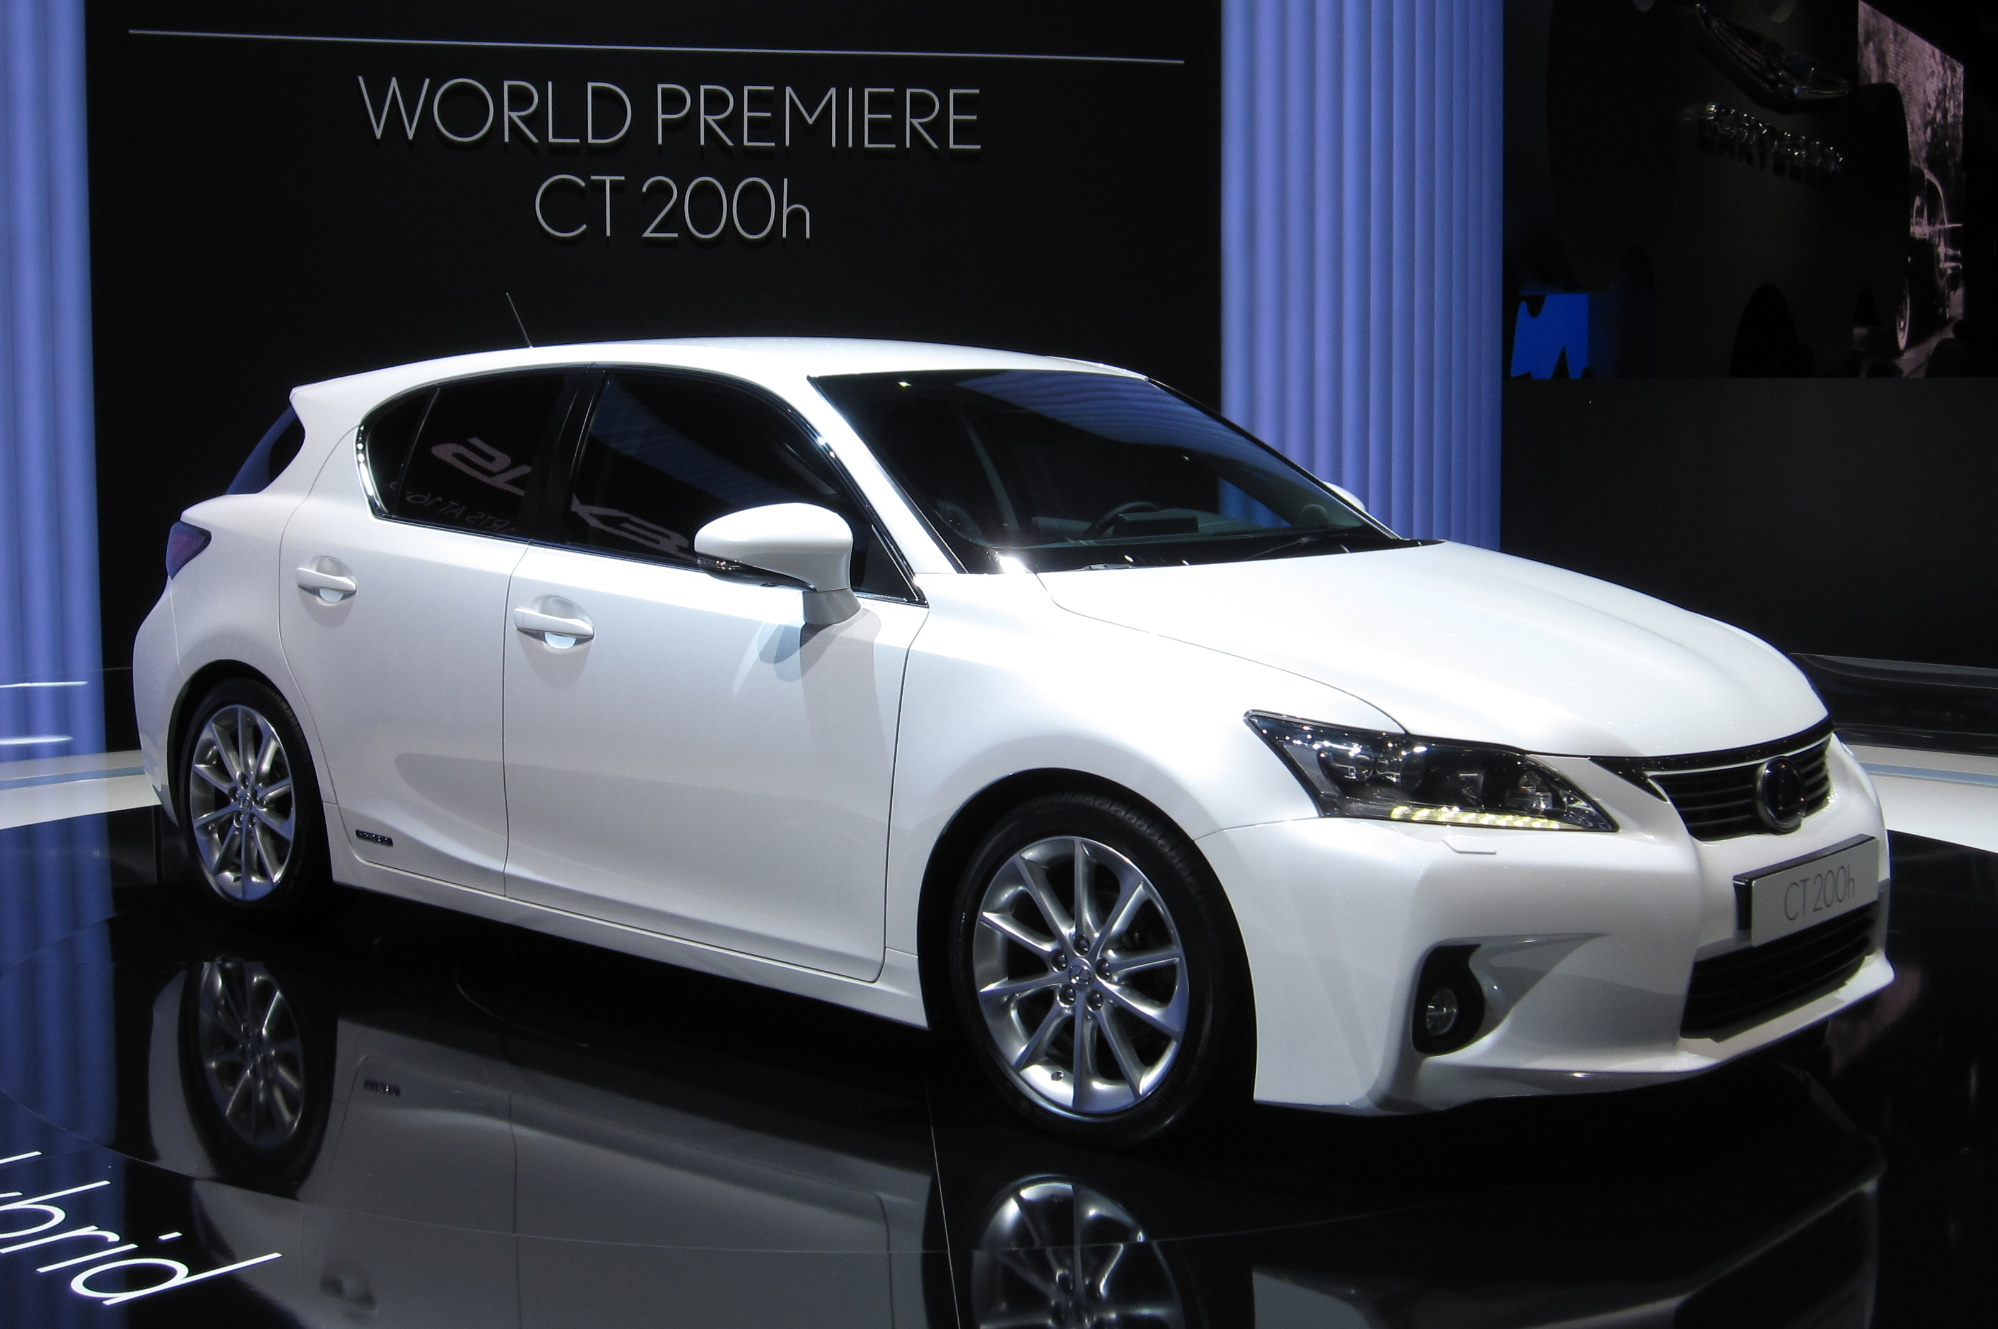 The Lexus CT 200h makes the cut on our round up of the most fuel efficient new vehicles.